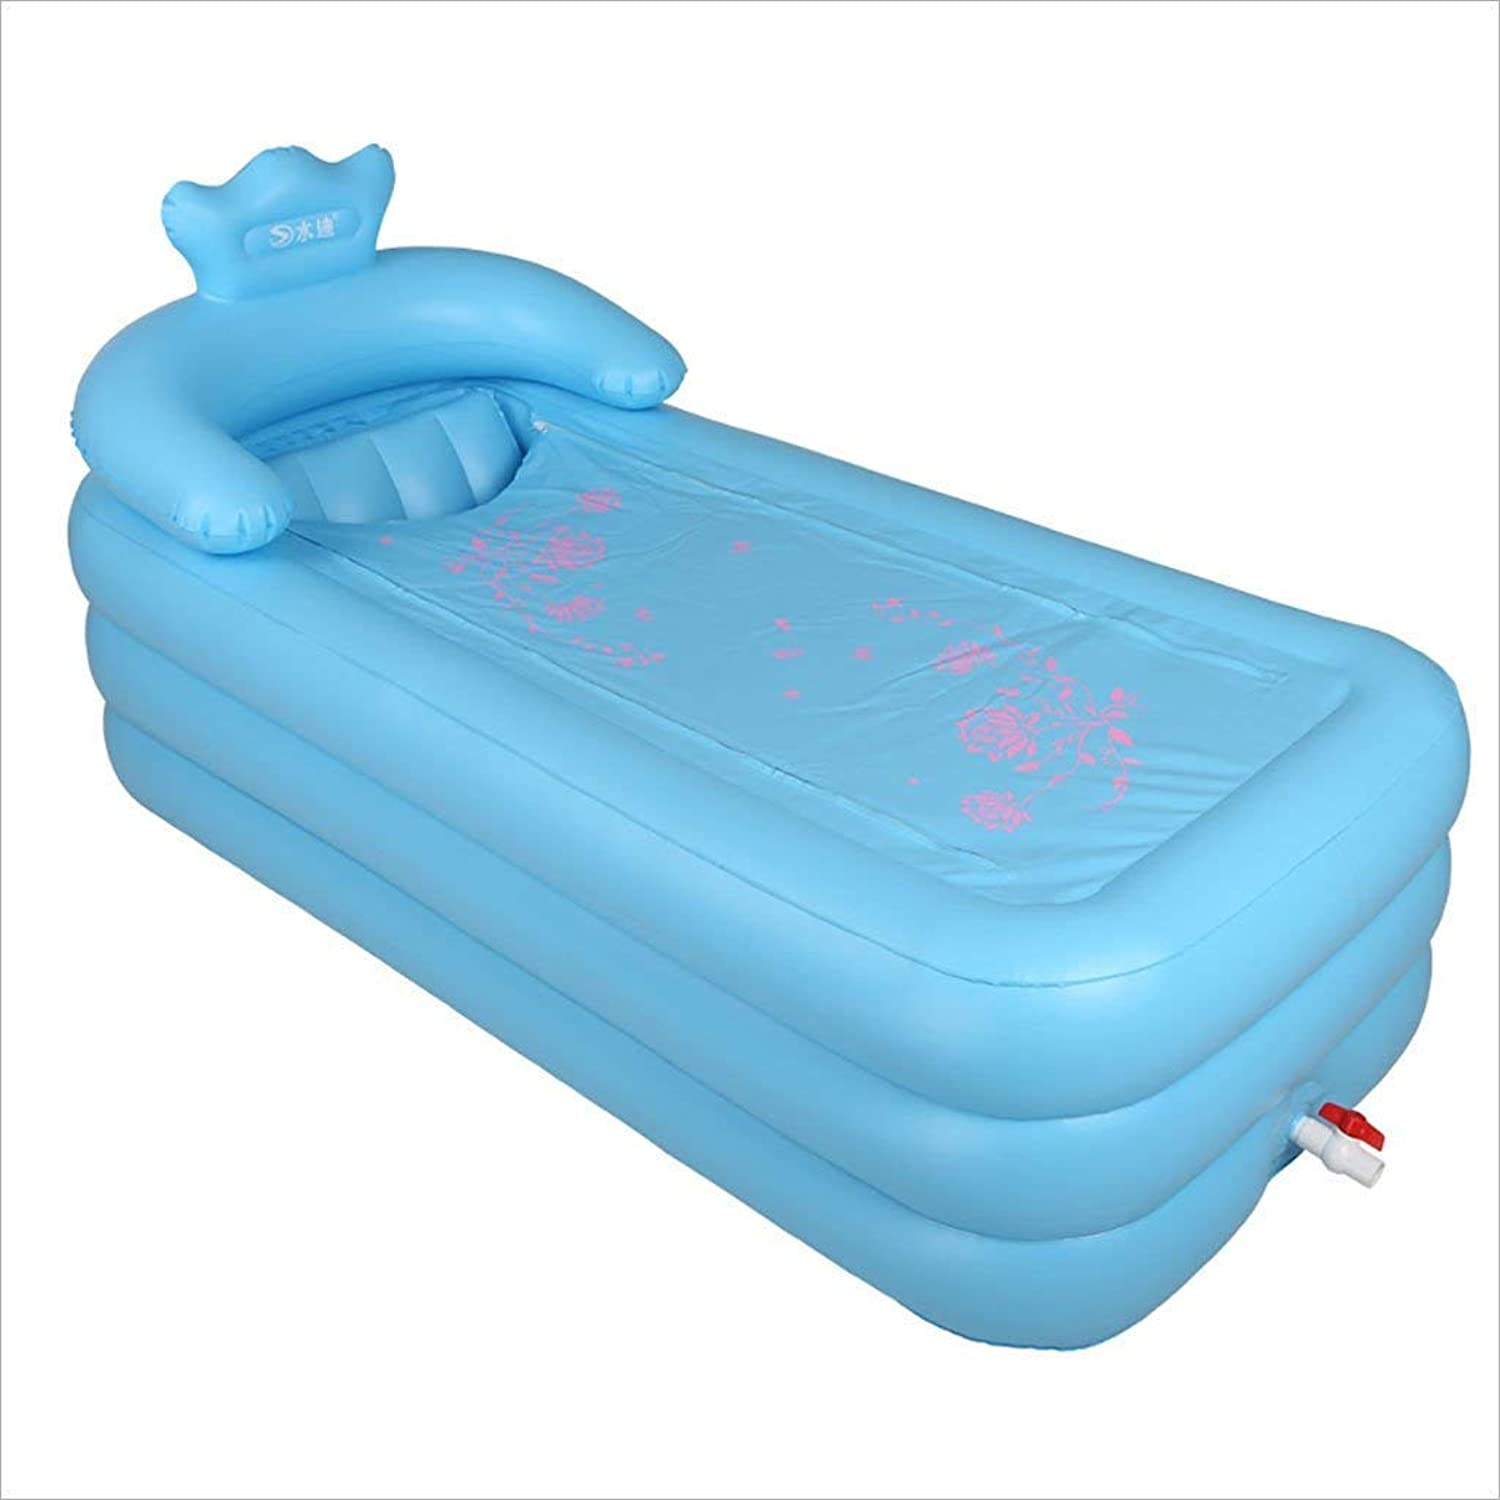 YUANY INFLATABLE BATHROOM Large adult bath with heated bath and inflatable bath (color  bluee sky, size  165  85  45 cm)